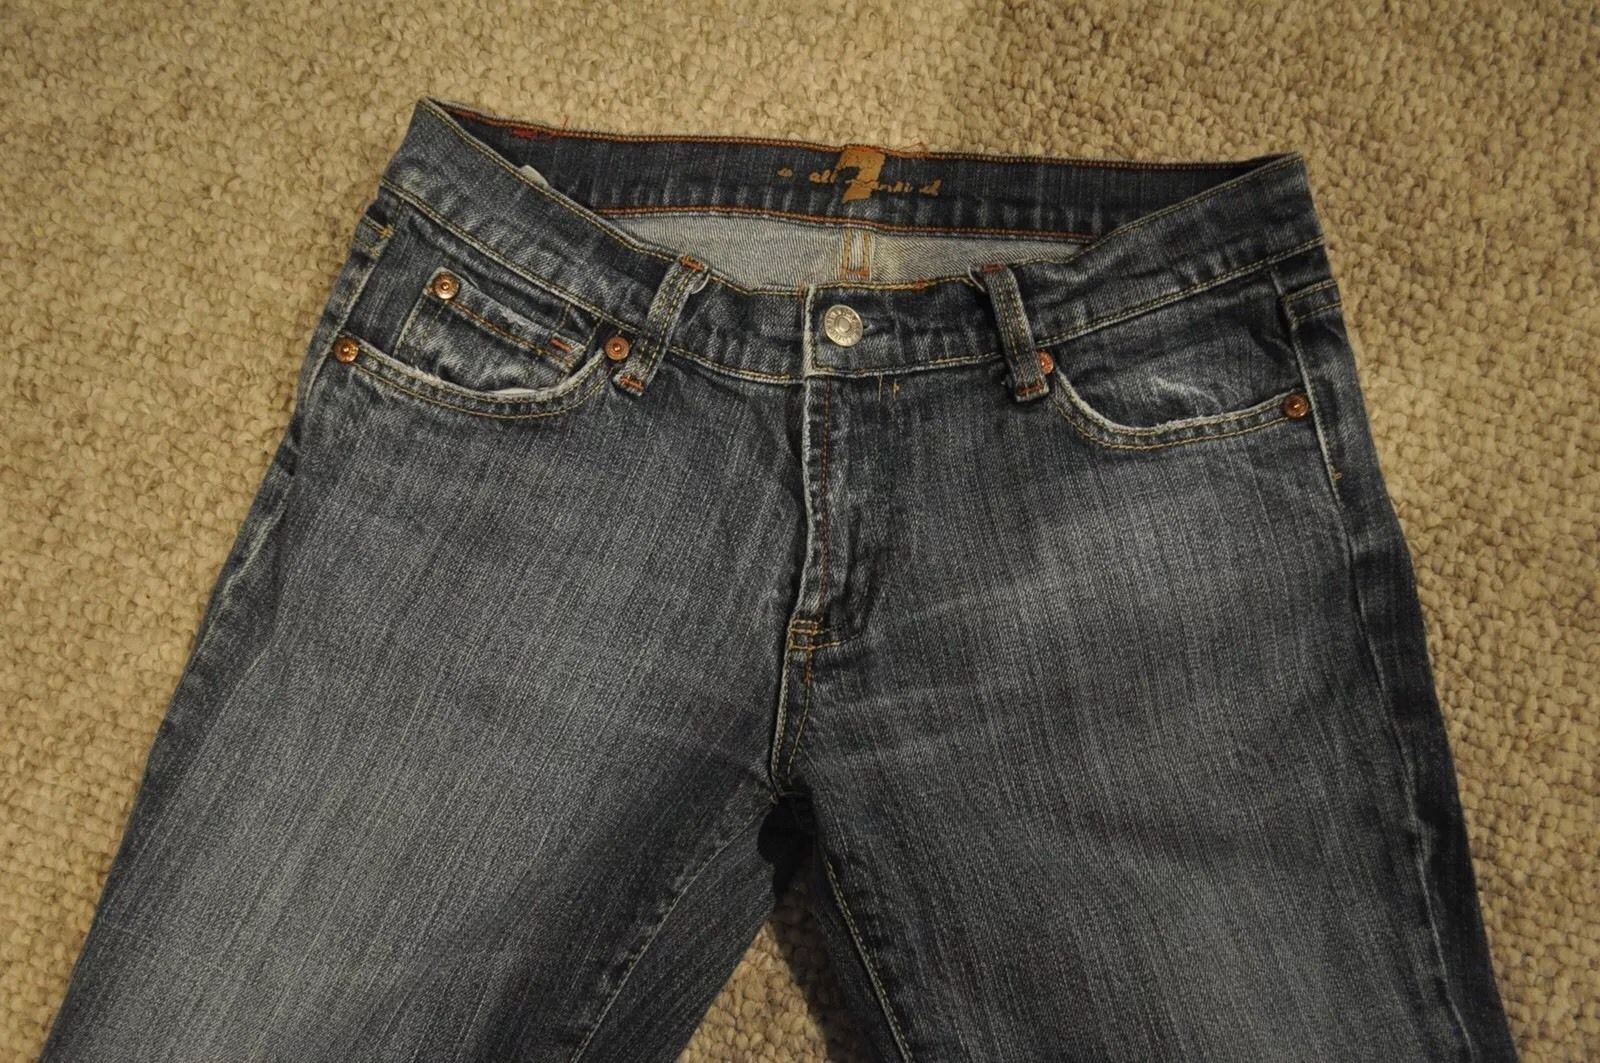 Women's 7 for All Man Kind Jeans Medium Wash Straight Leg 28